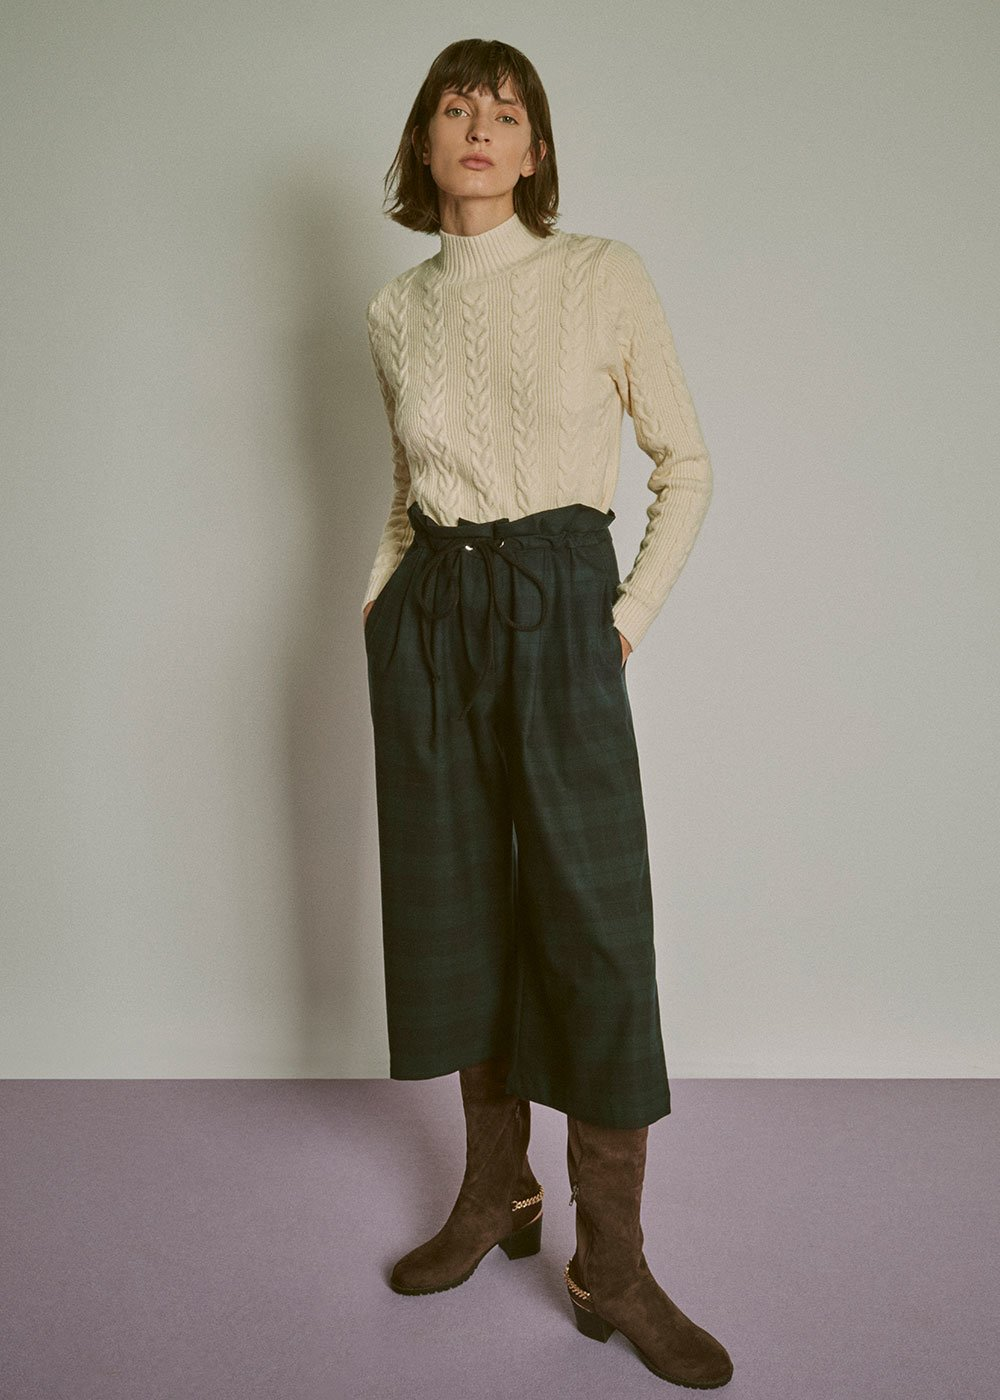 Mabel sweater with braided processing - Cream - Woman